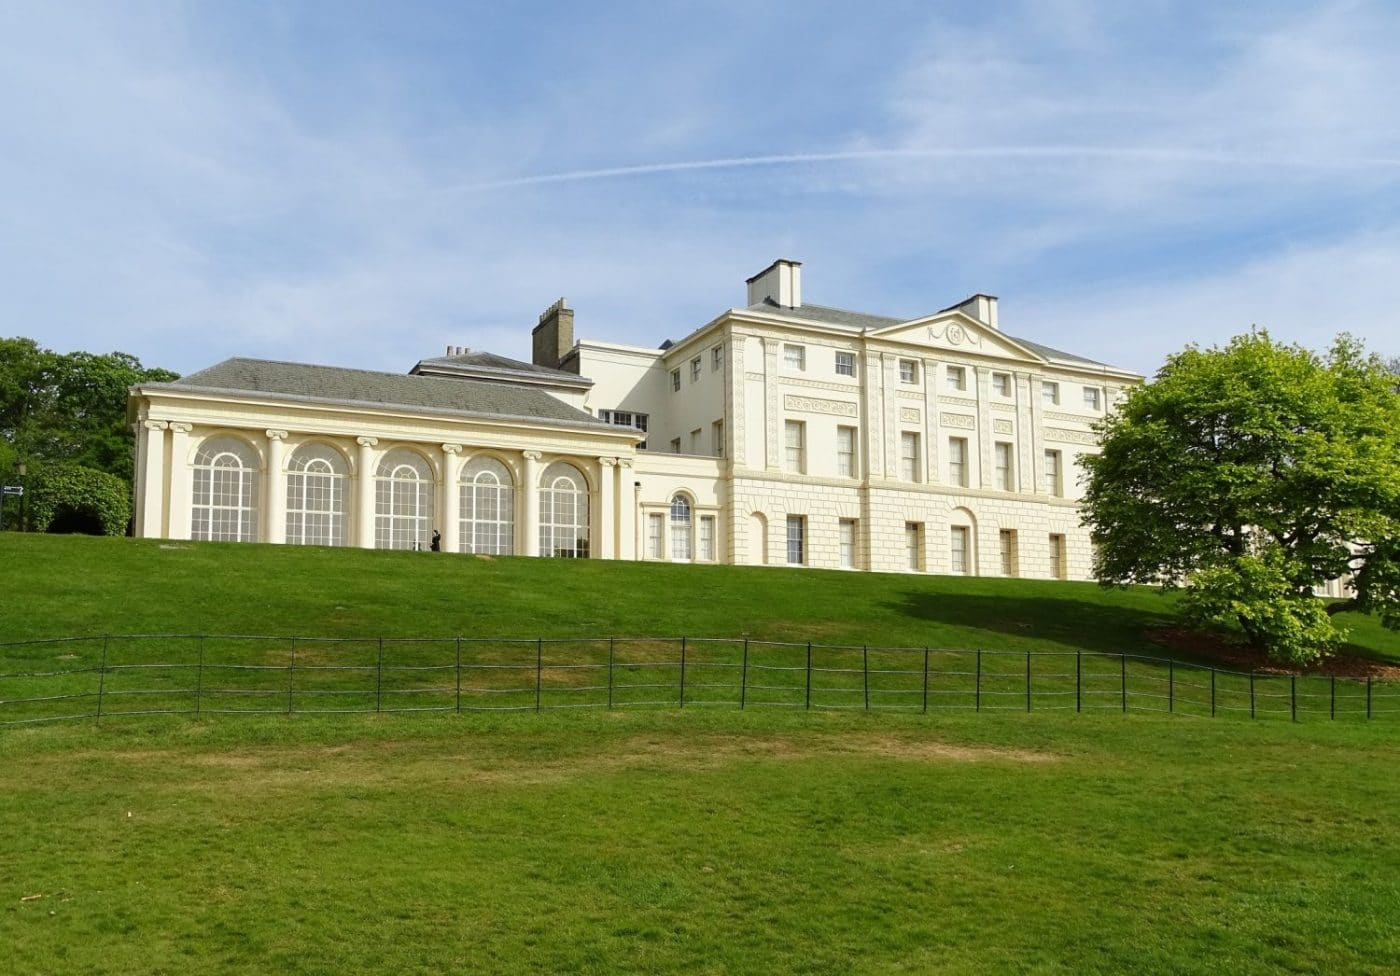 Kenwood House and park is one of north London's treasures